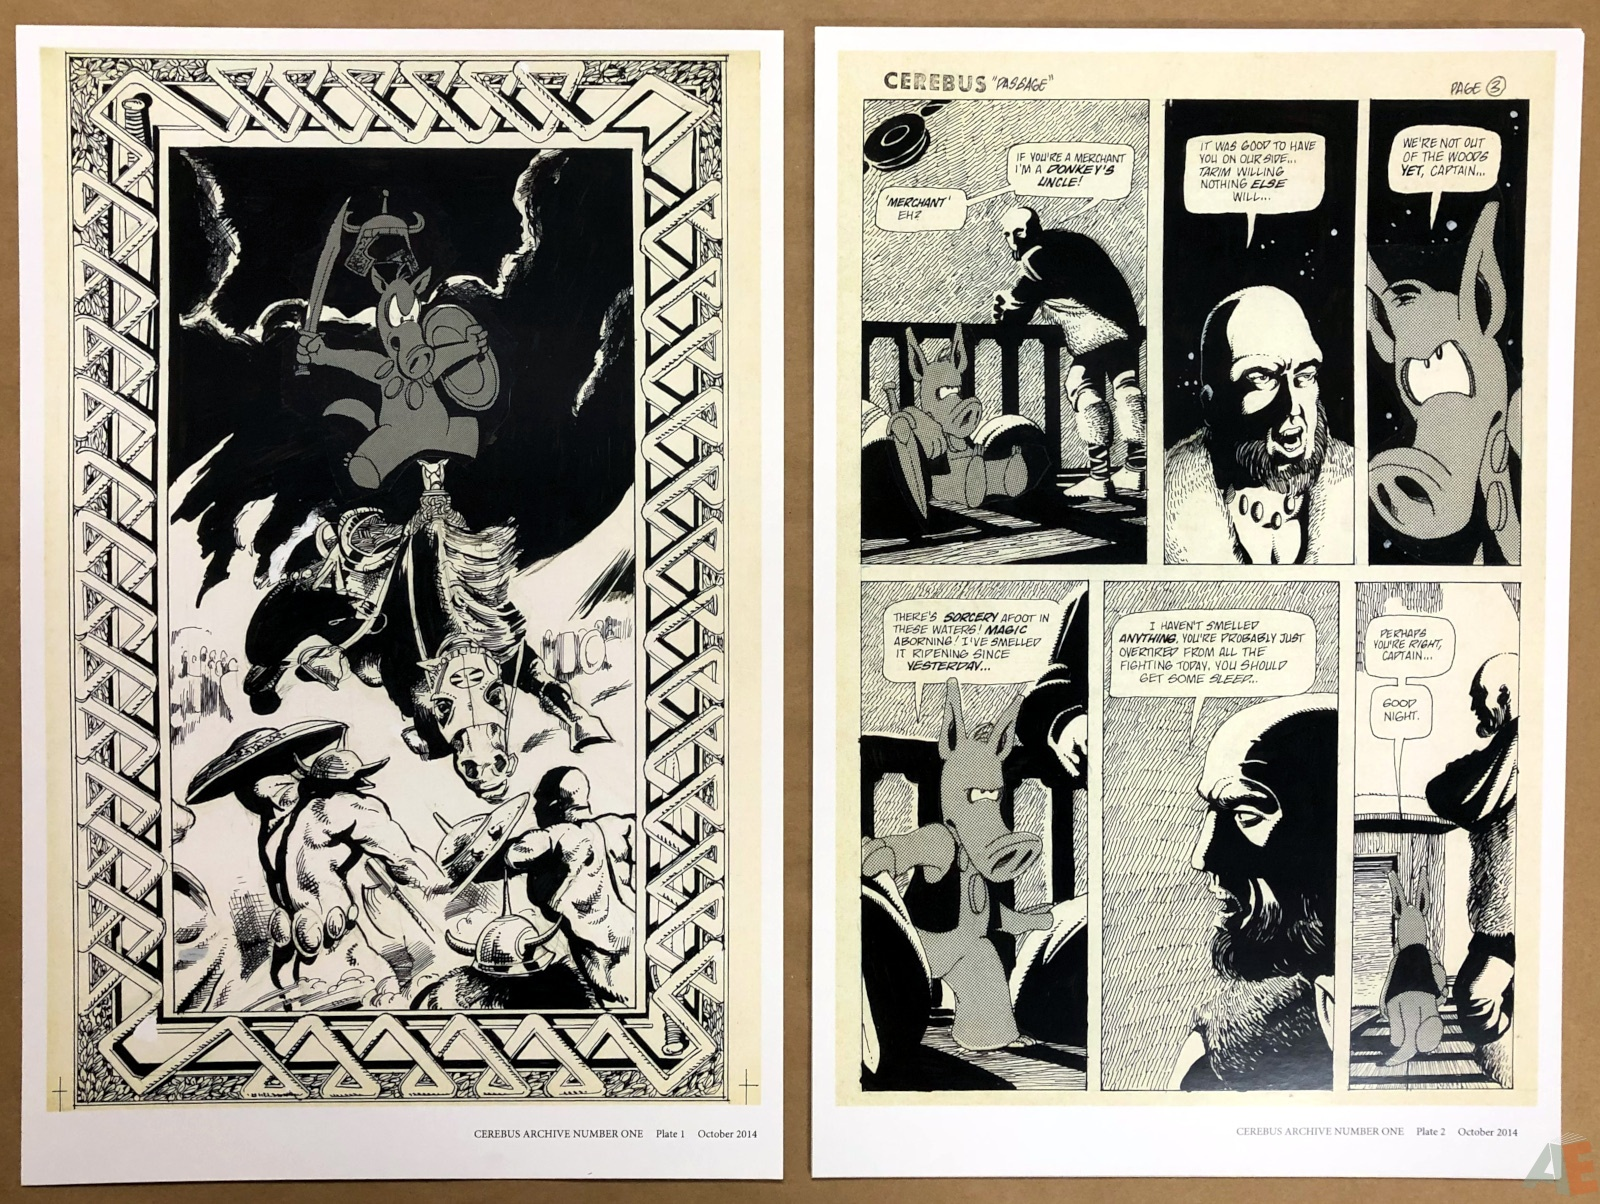 Cerebus Archive Number One 6